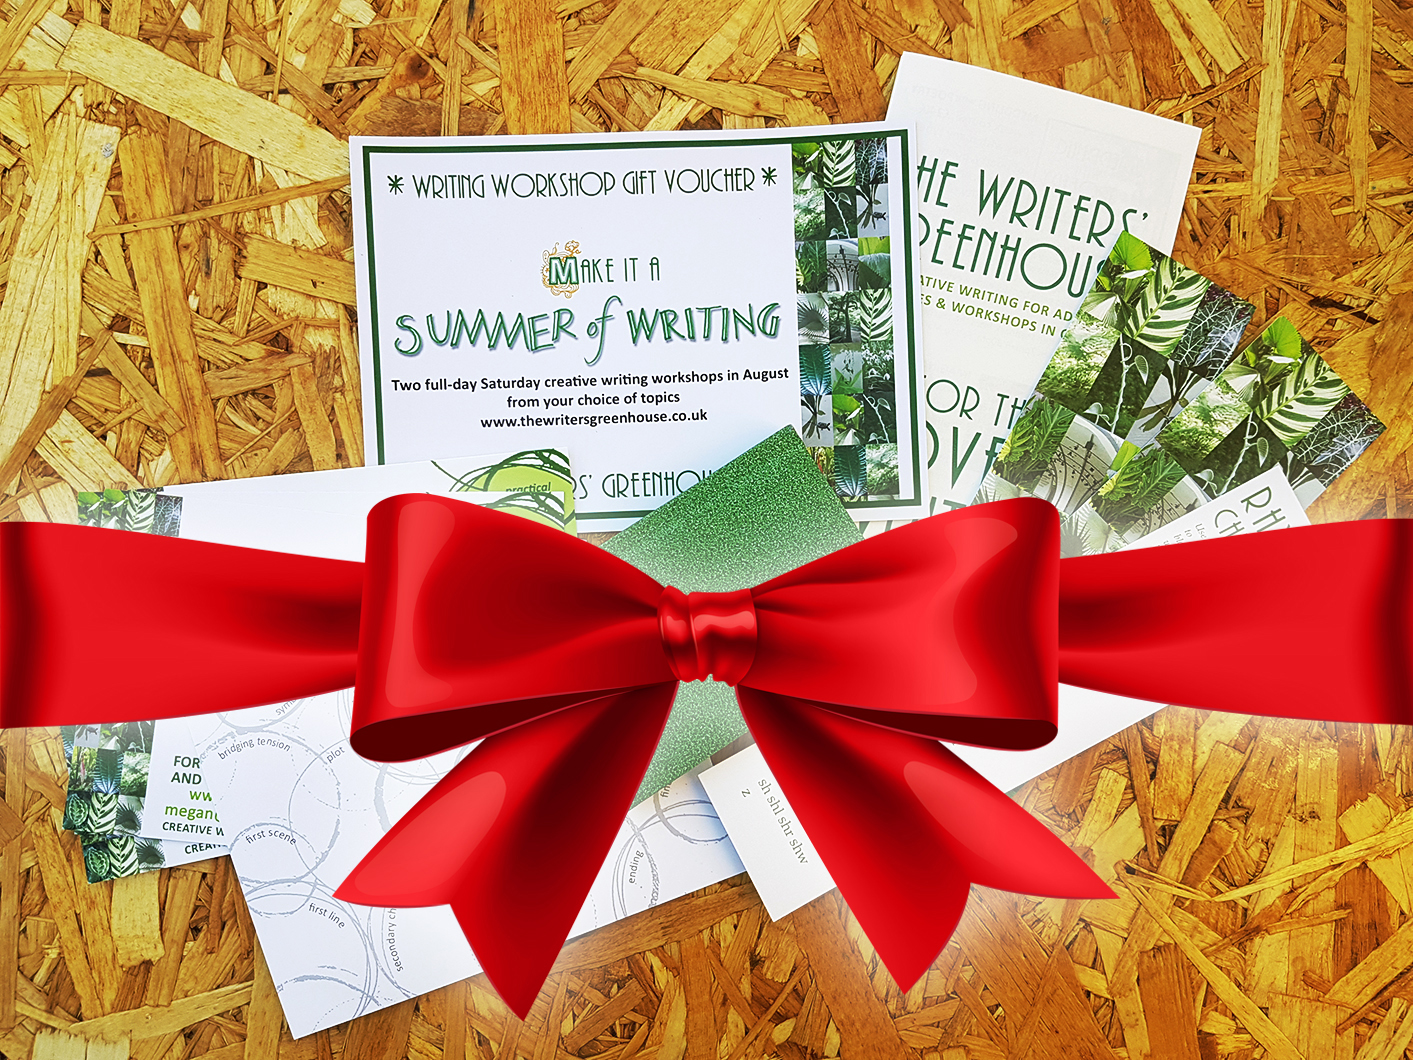 Photo of voucher with rhyme bookmarks, Story Circle postcards, and a small green notebook